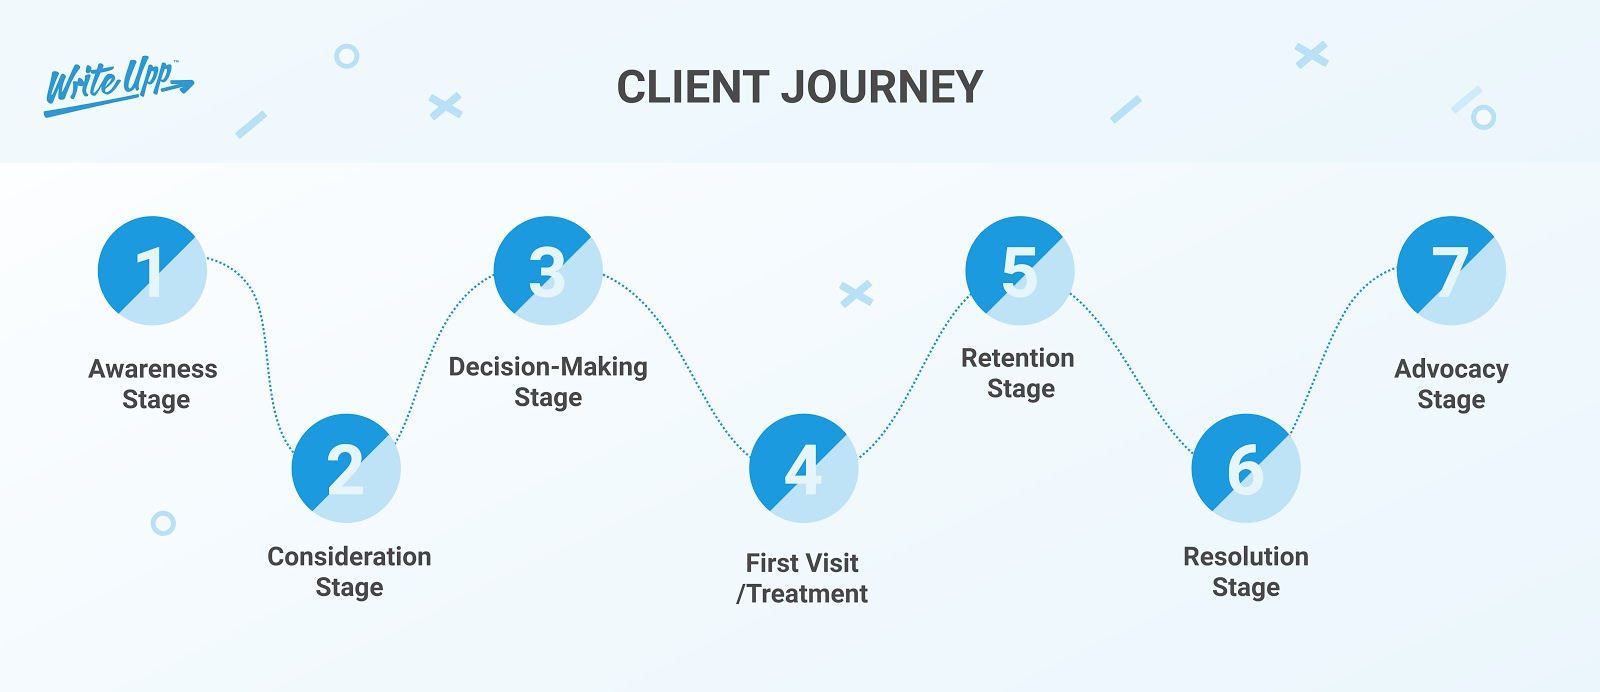 Overview of the 7-step client journey for private practice